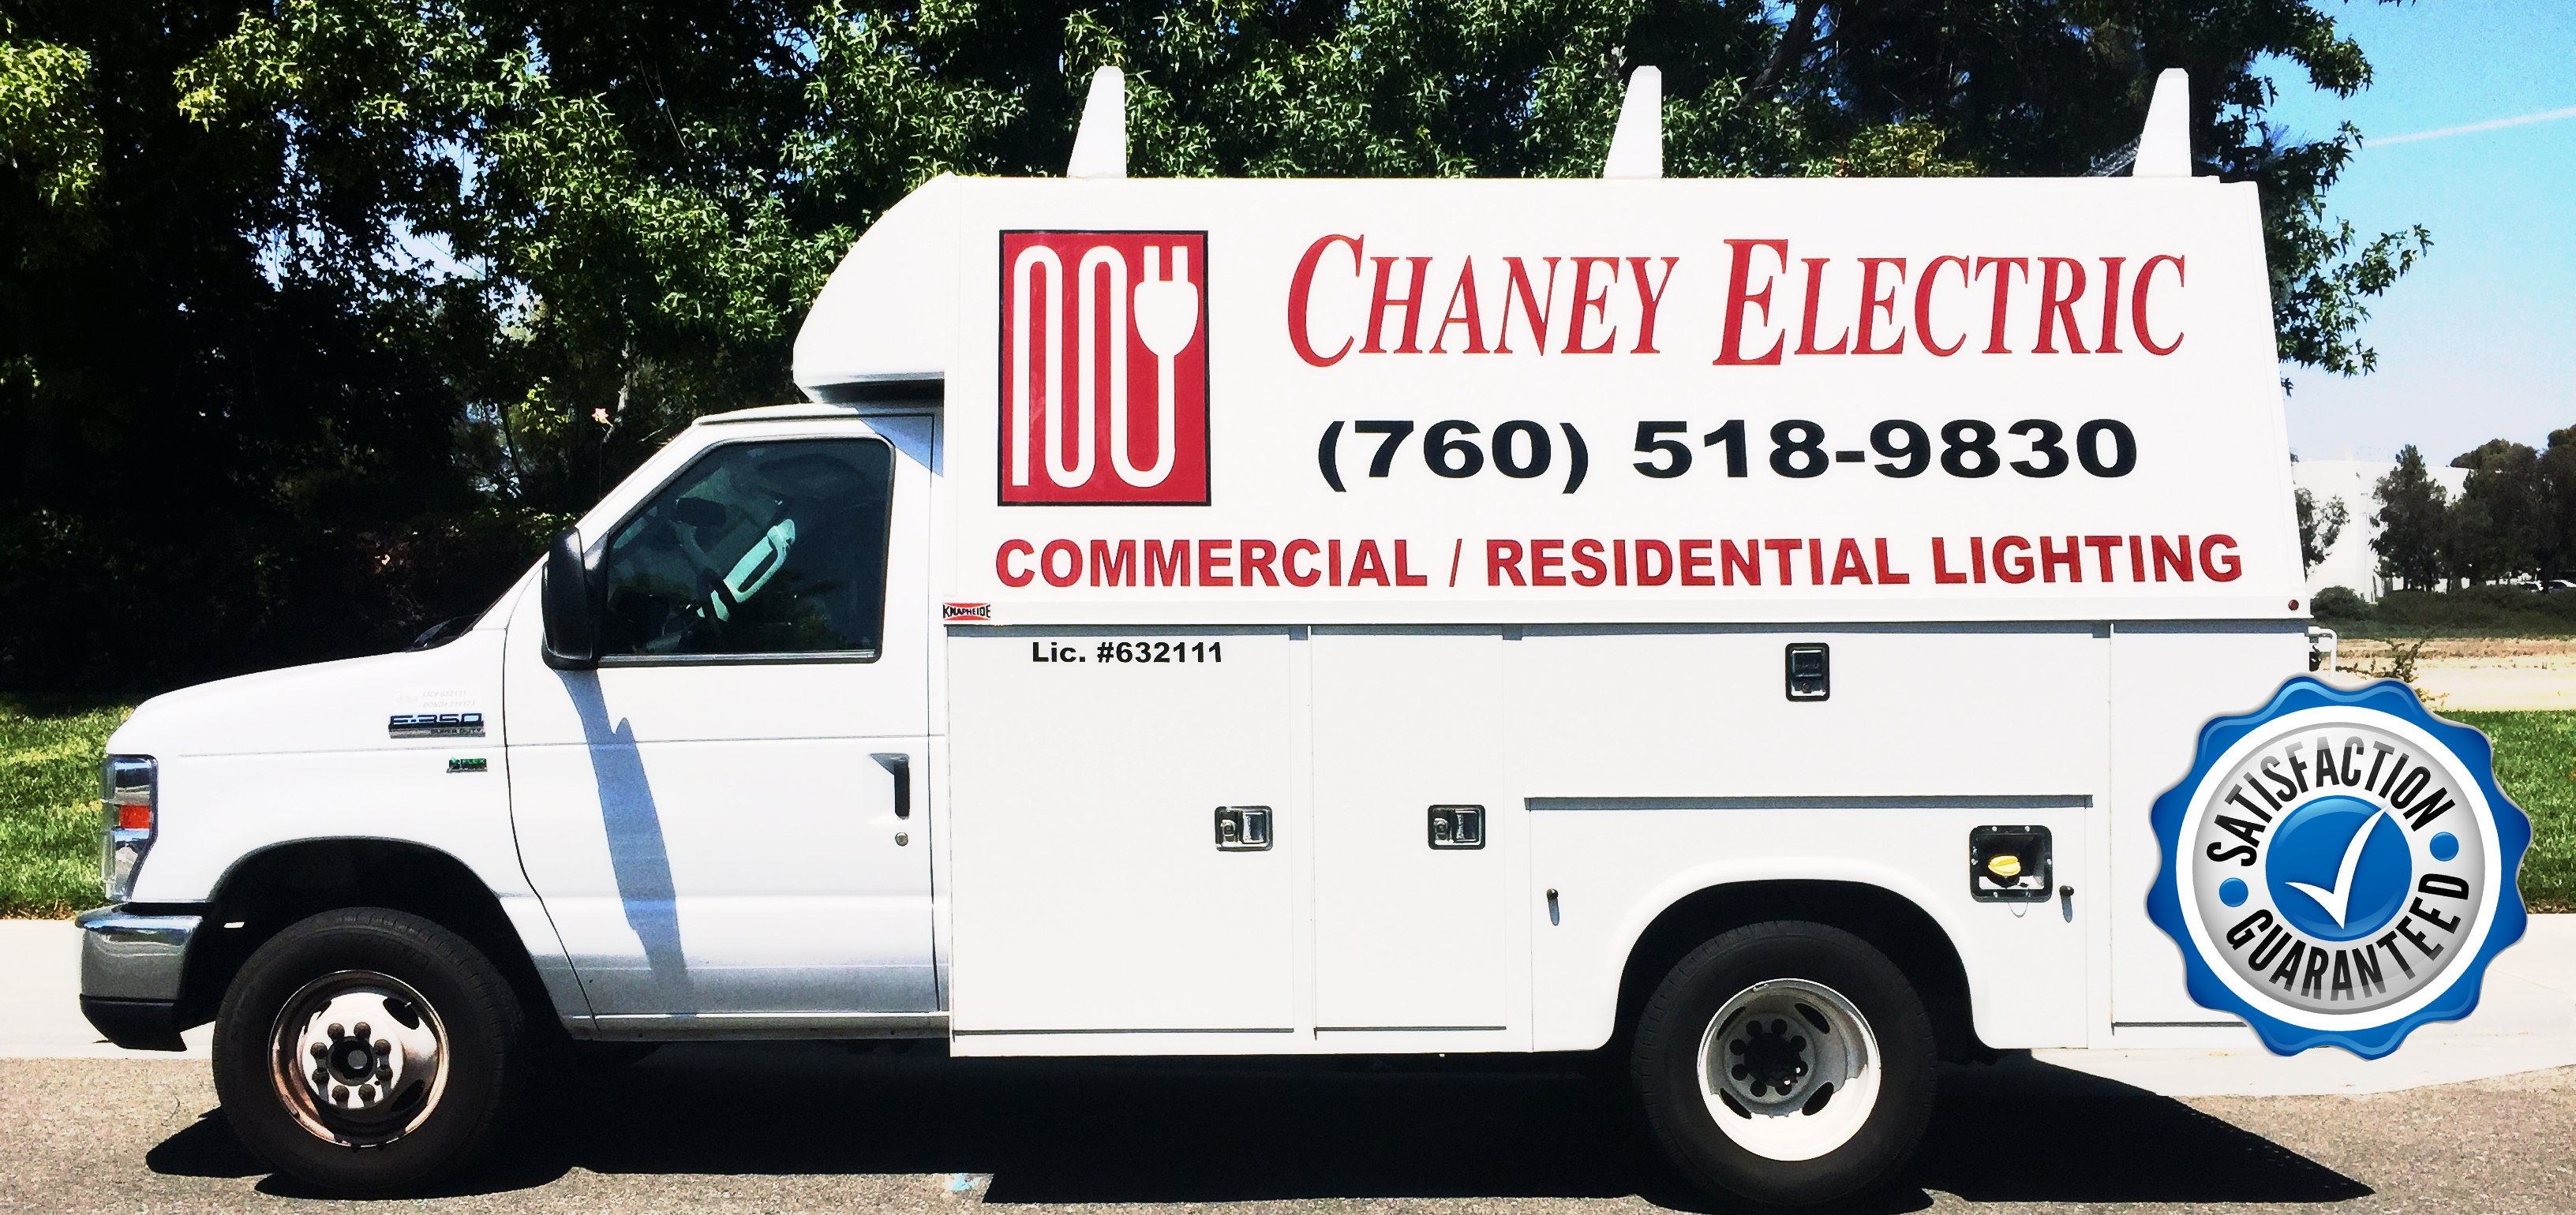 Carlsbad Electrician Bbb Approved Chaney Electric